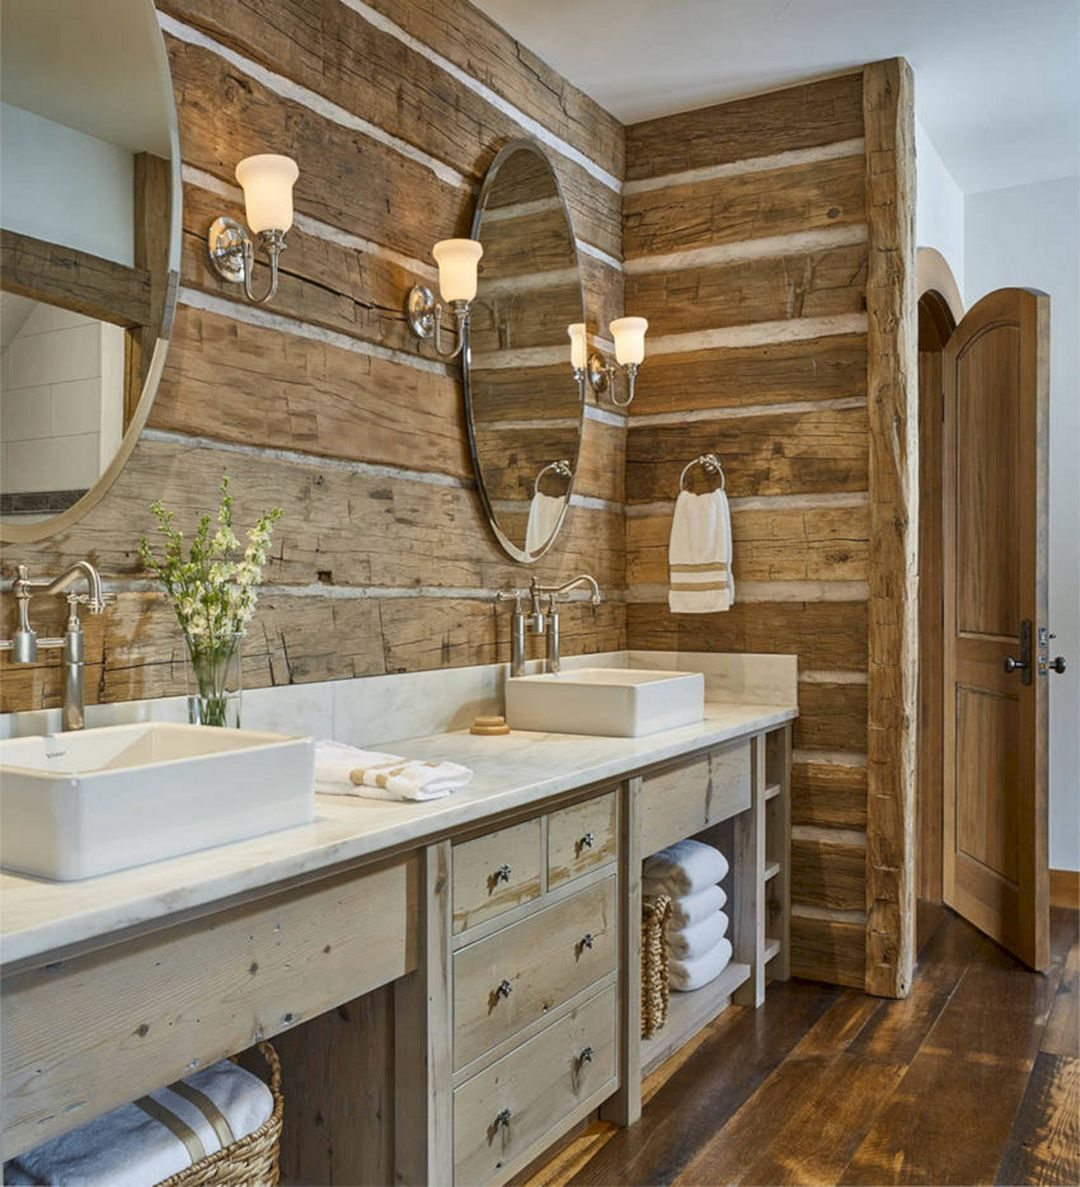 10 Incredible Rustic Bathroom Decoration With Wall Stone Ideas Dexorate Rustic Bathrooms Rustic Bathroom Designs Rustic Bathroom Wall Decor